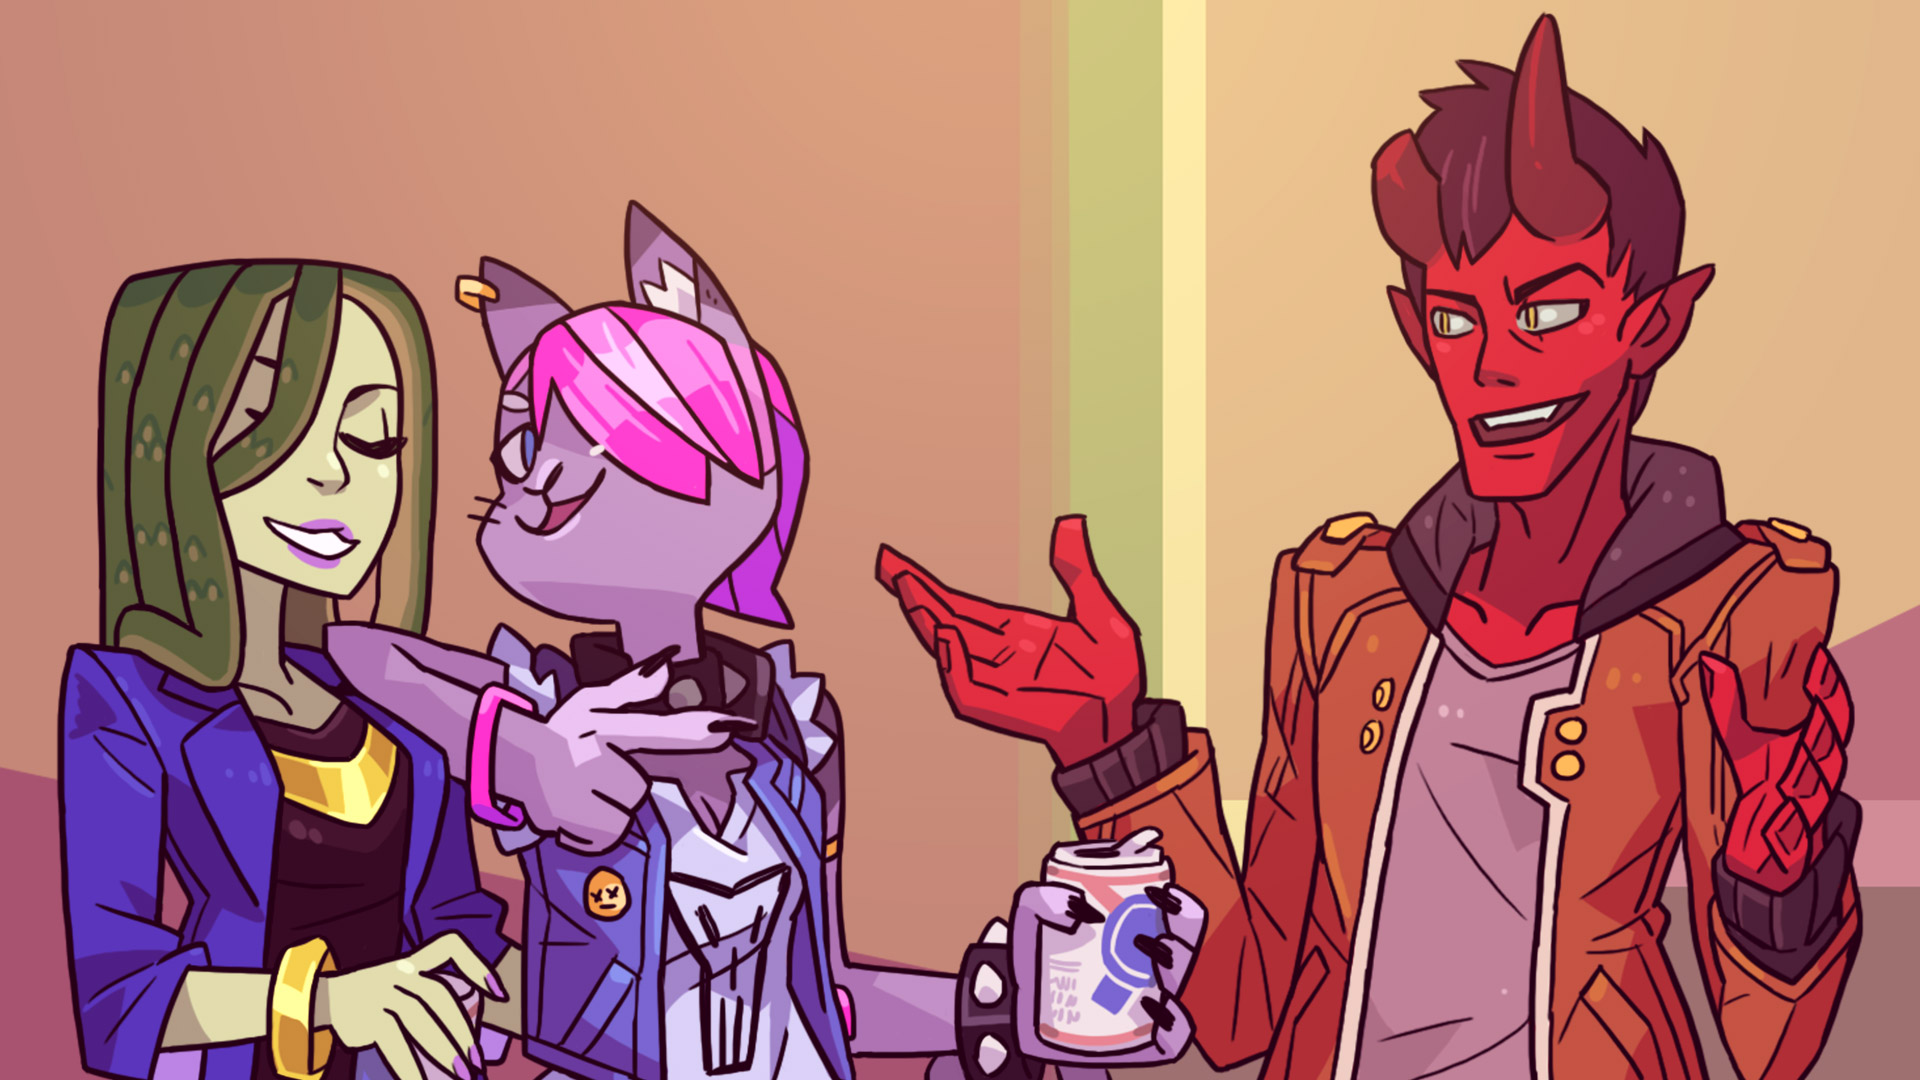 Steam card exchange showcase monster prom card 3 of 8artwork chat thecheapjerseys Gallery